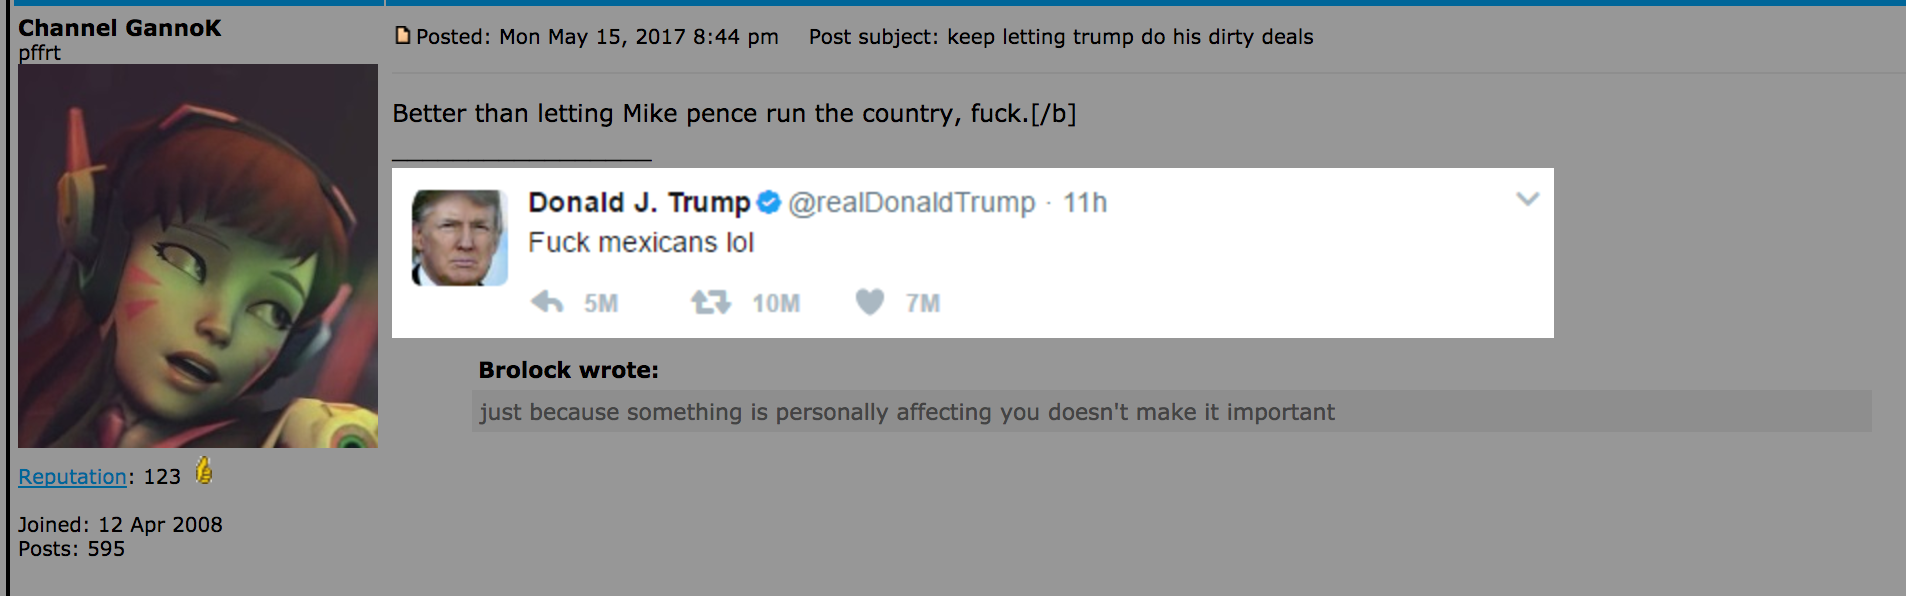 Screen Shot 2017-05-15 at 9.35.47 PM.png